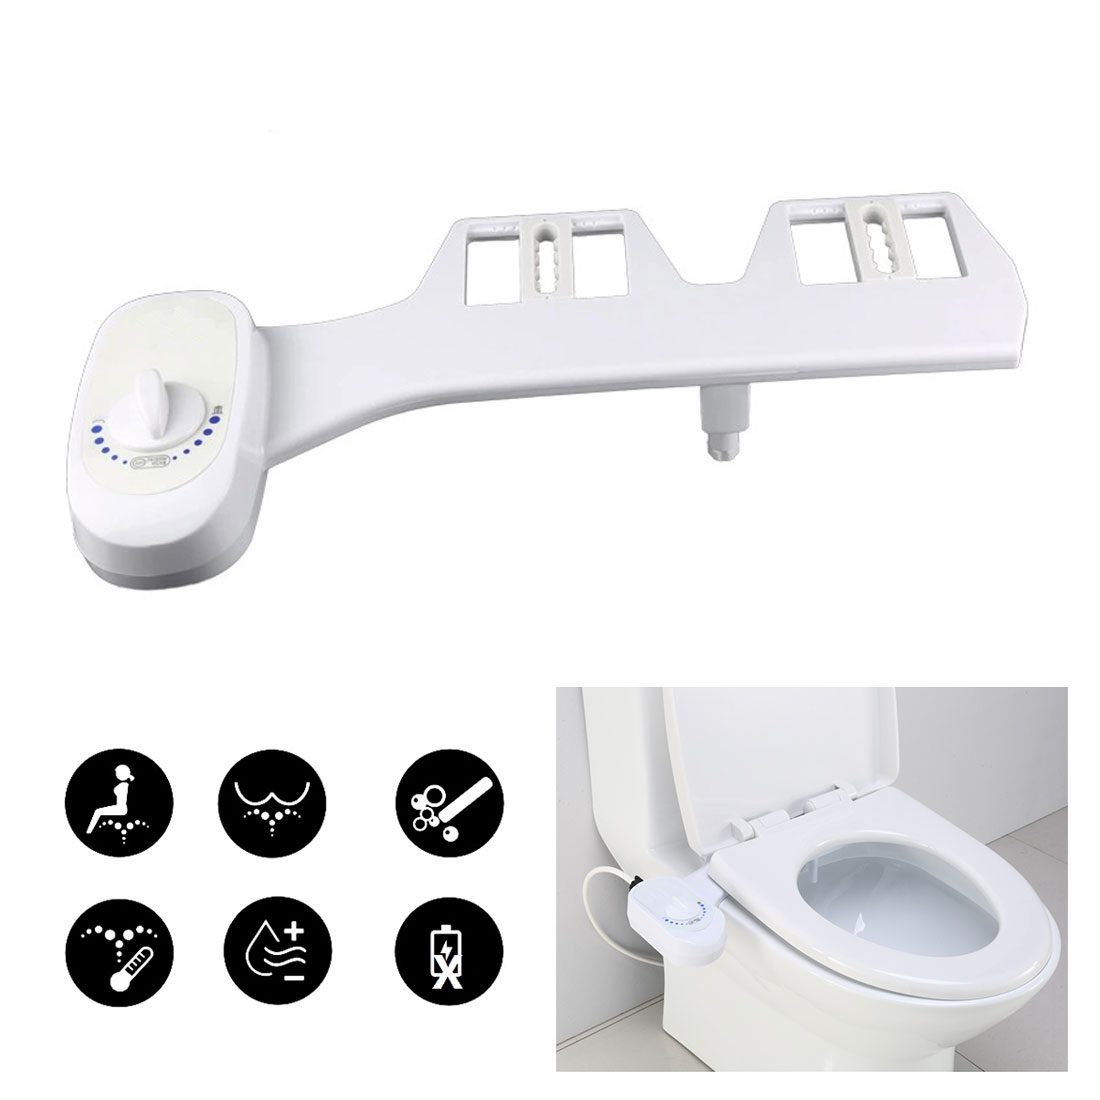 Non-Electric Toilet Bidet Seat For Pregnant Women Self-Cleaning Nozzle Mechanical Bidet Muslim Shower Fresh Water Bidet Sprayer